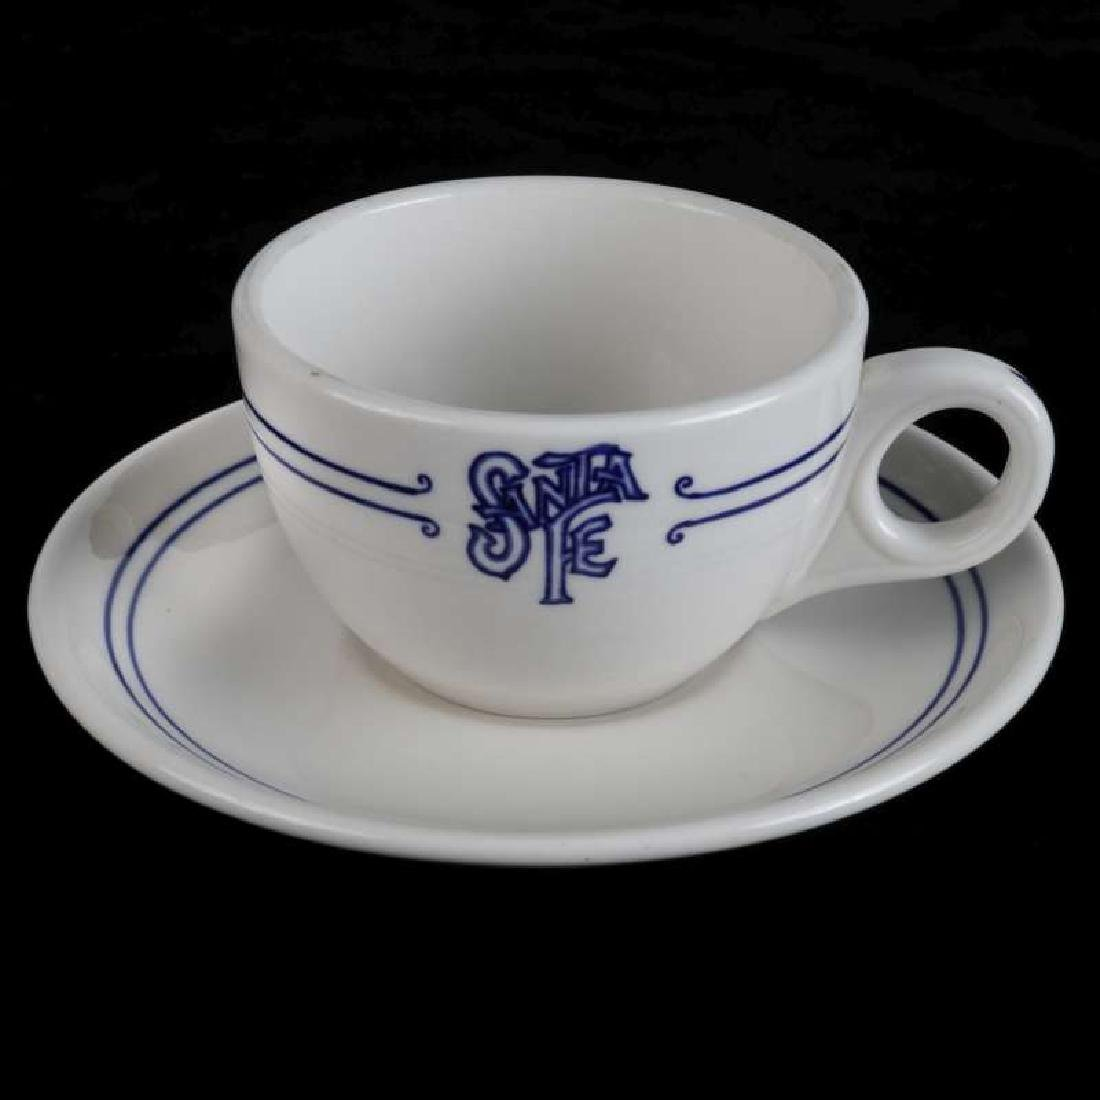 AT&SF SANTA FE RR BLEEDING BLUE COFFEE CUP, SAUCER